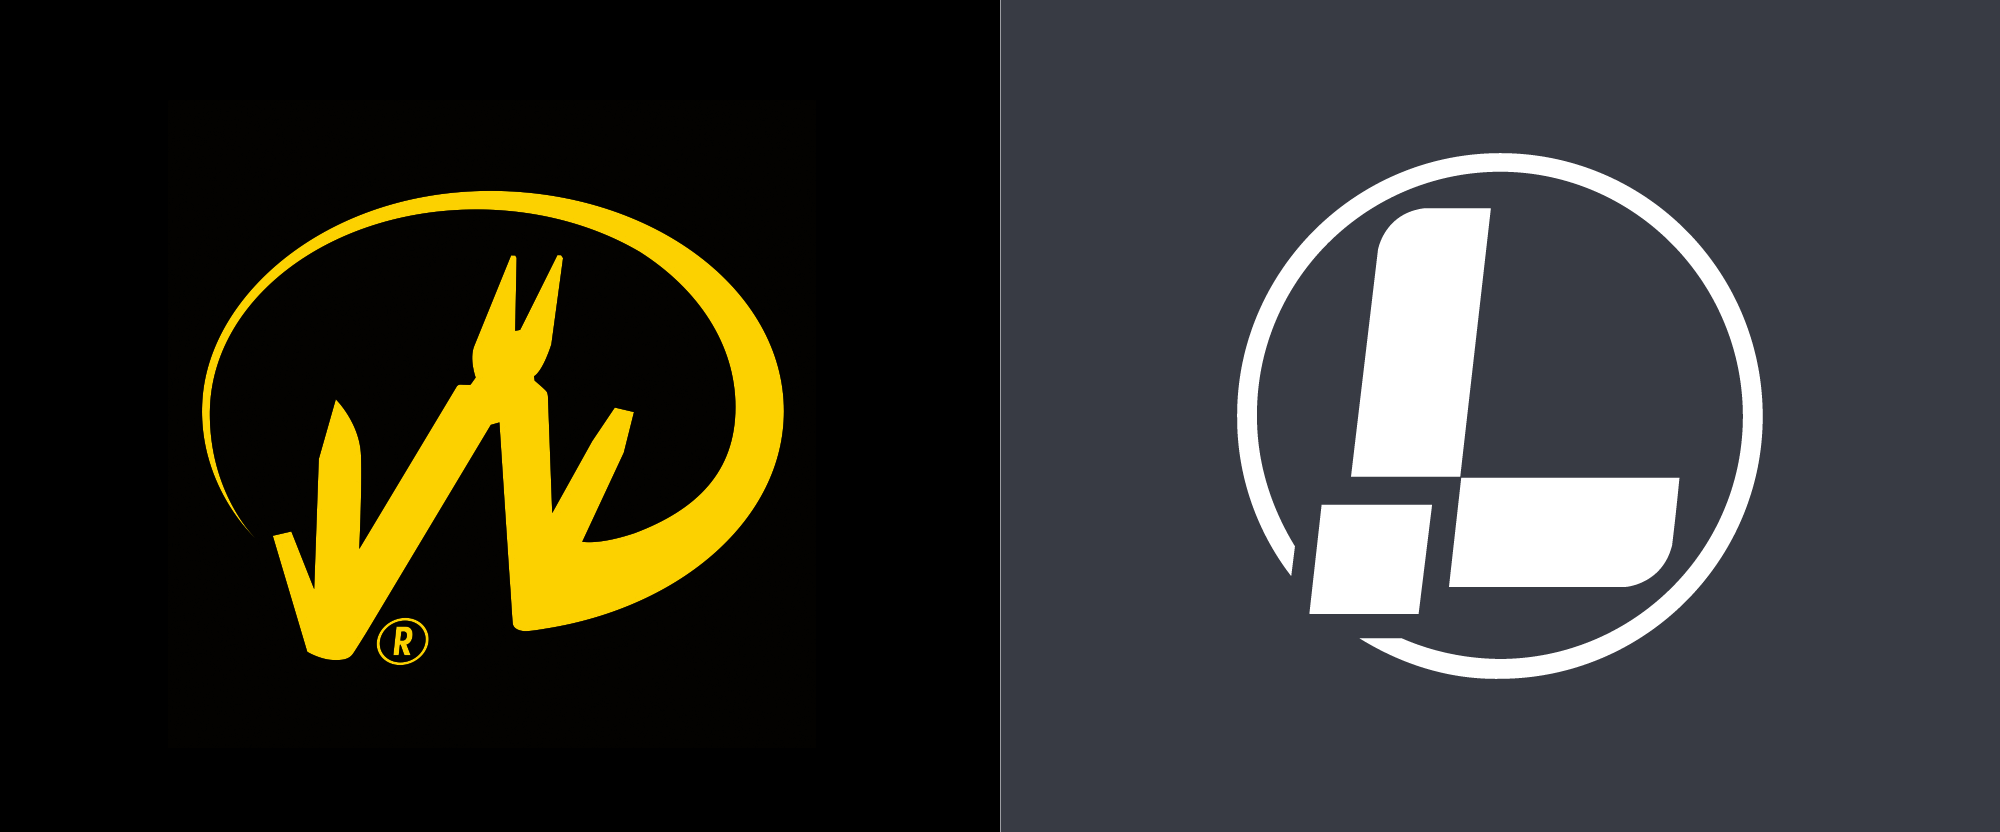 New Logo for Leatherman